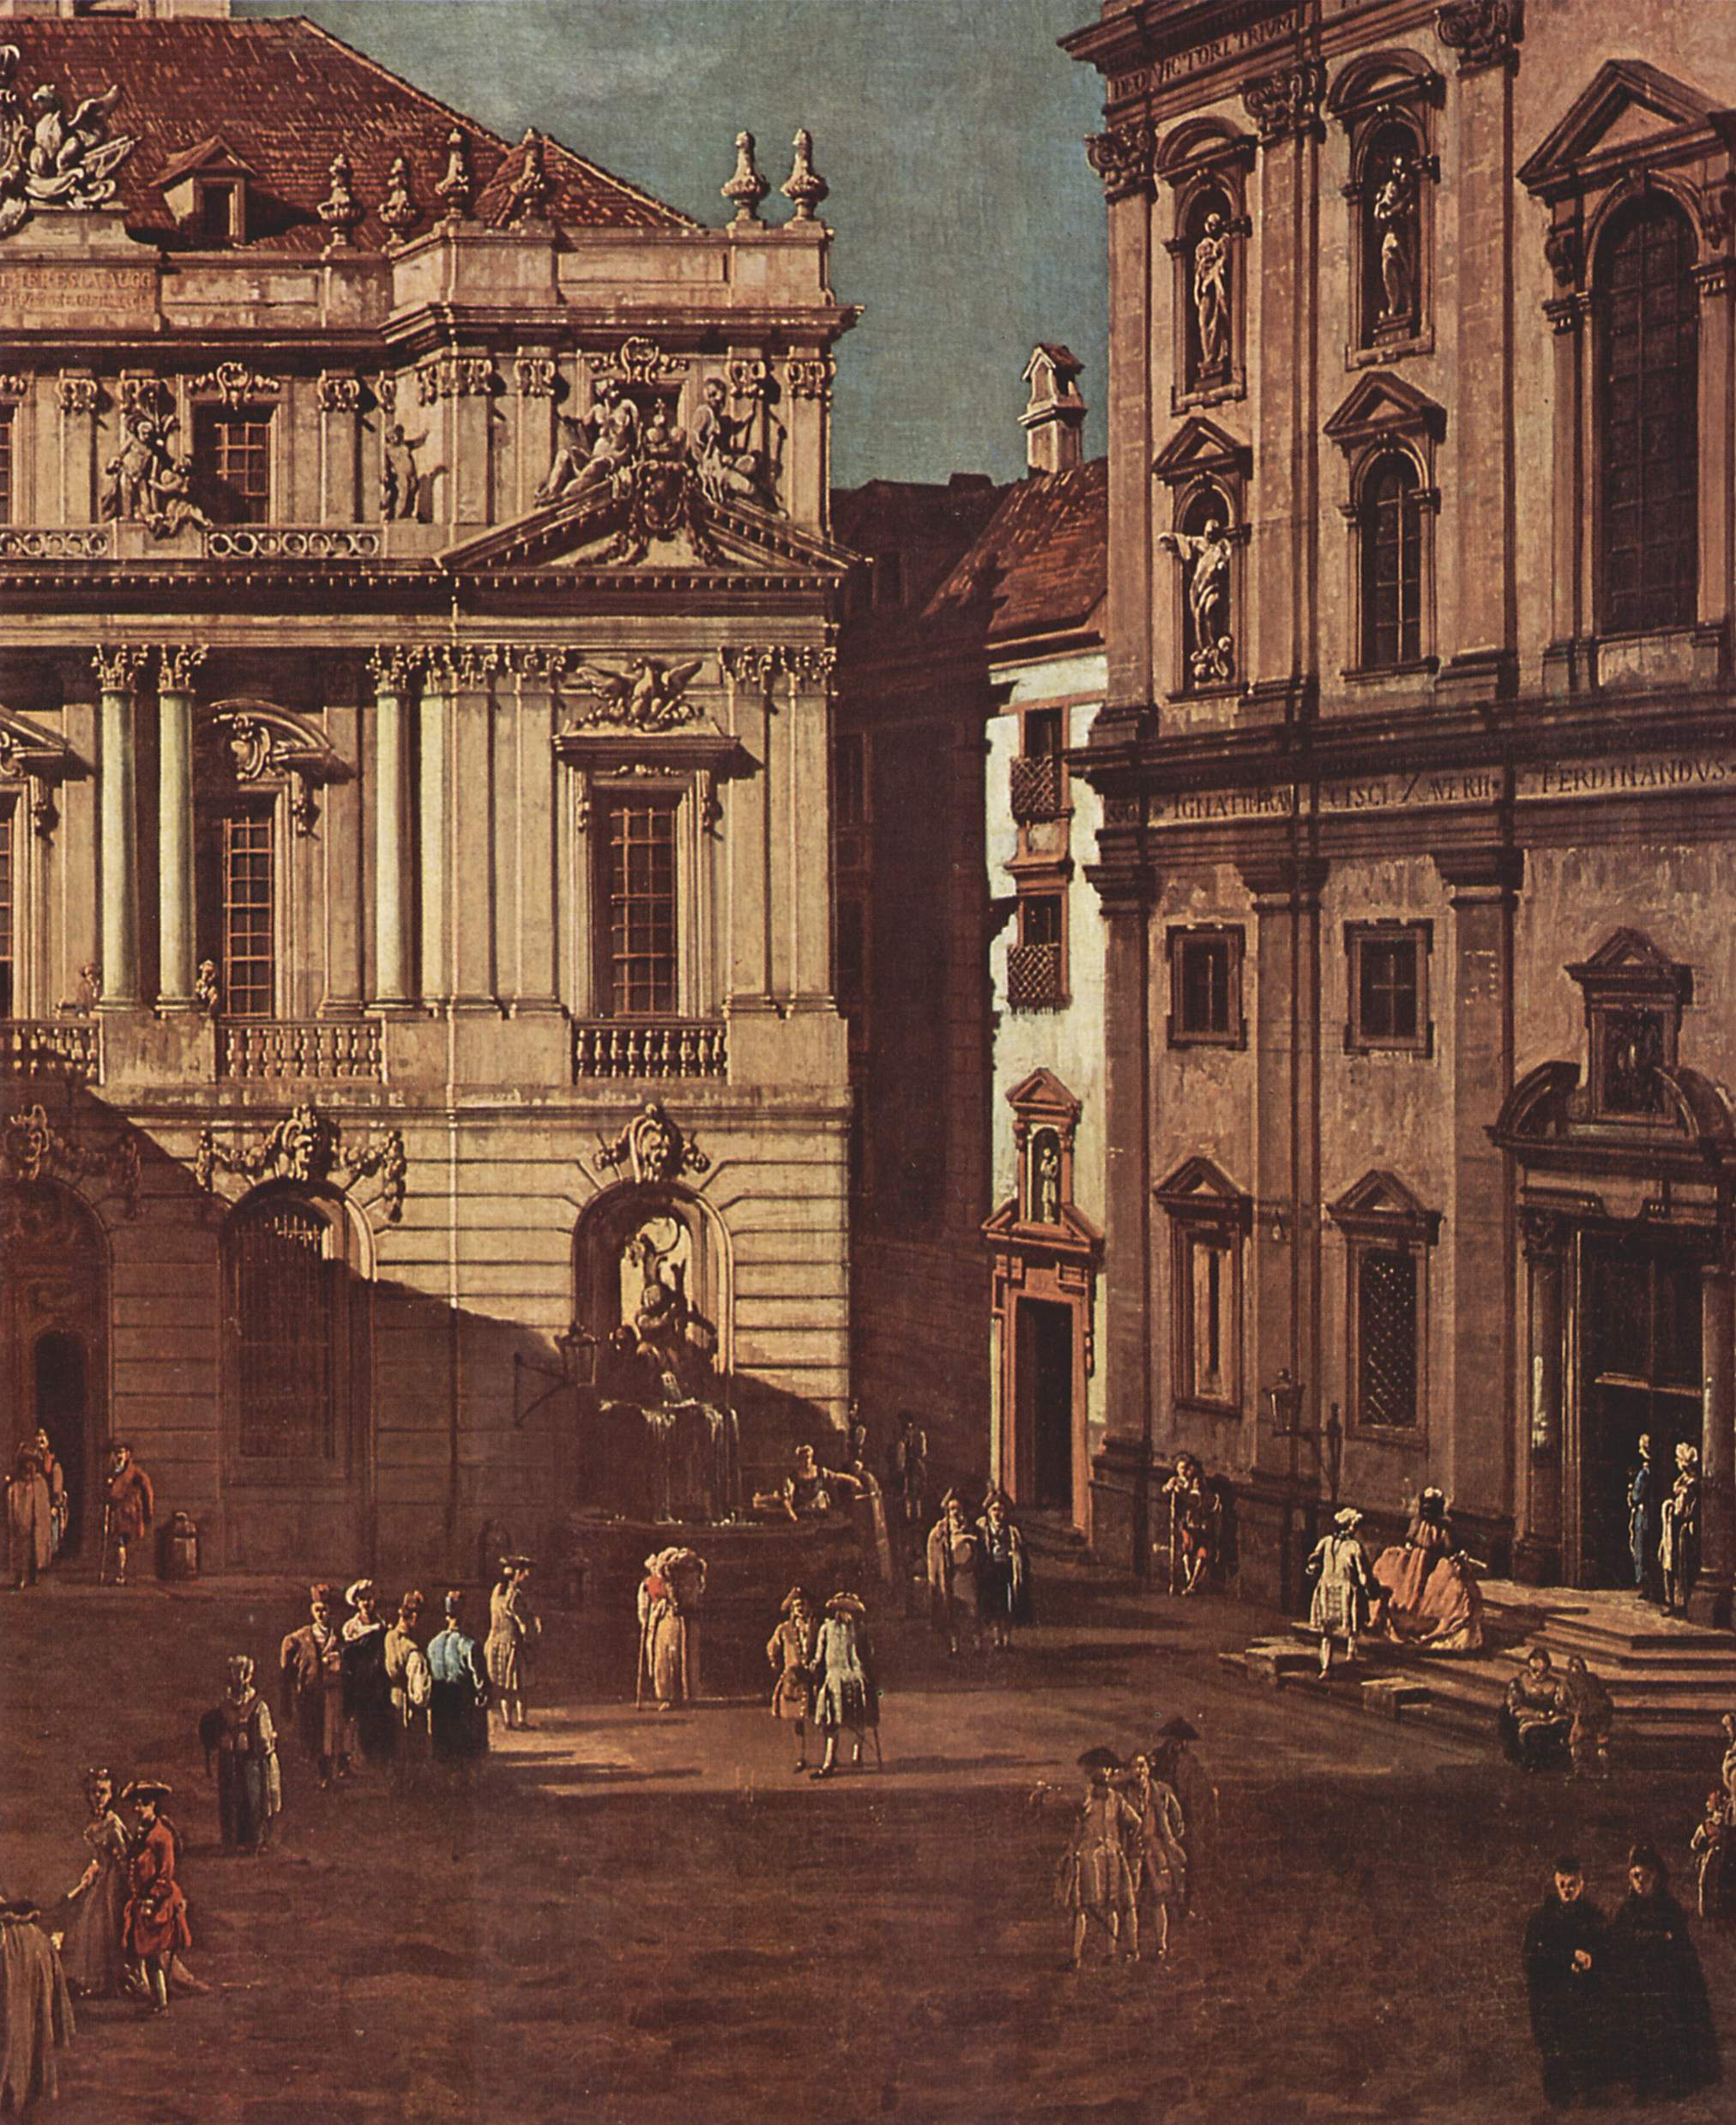 http://upload.wikimedia.org/wikipedia/commons/5/55/Canaletto_%28I%29_036.jpg